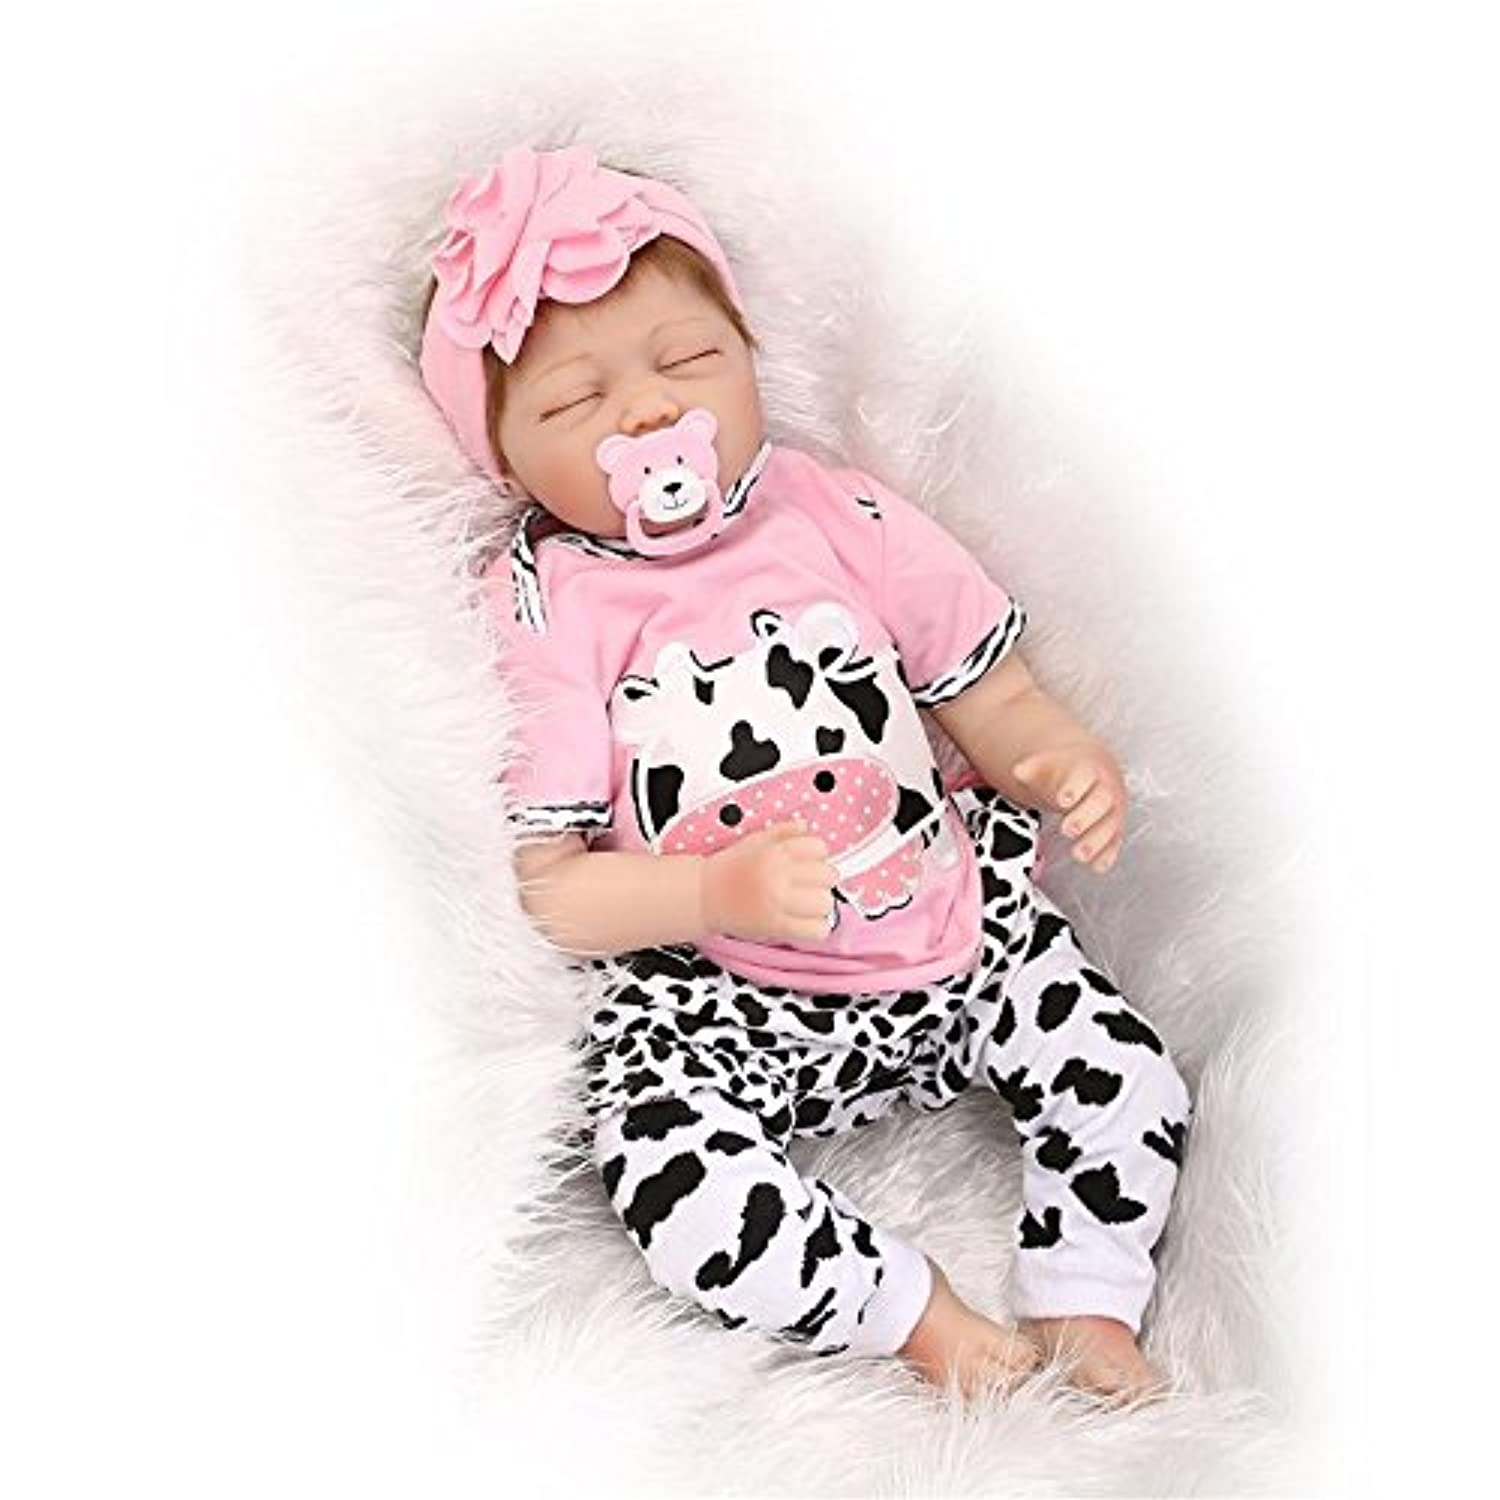 Reborn Baby Doll Realistic Baby-Soft Vinyl Silicone Preemie Toy For DINK Families and Seniors, 60cm Lifelike Baby Girl with Pink Cow Clothes, Great Toy For Adults, Kids and Babies